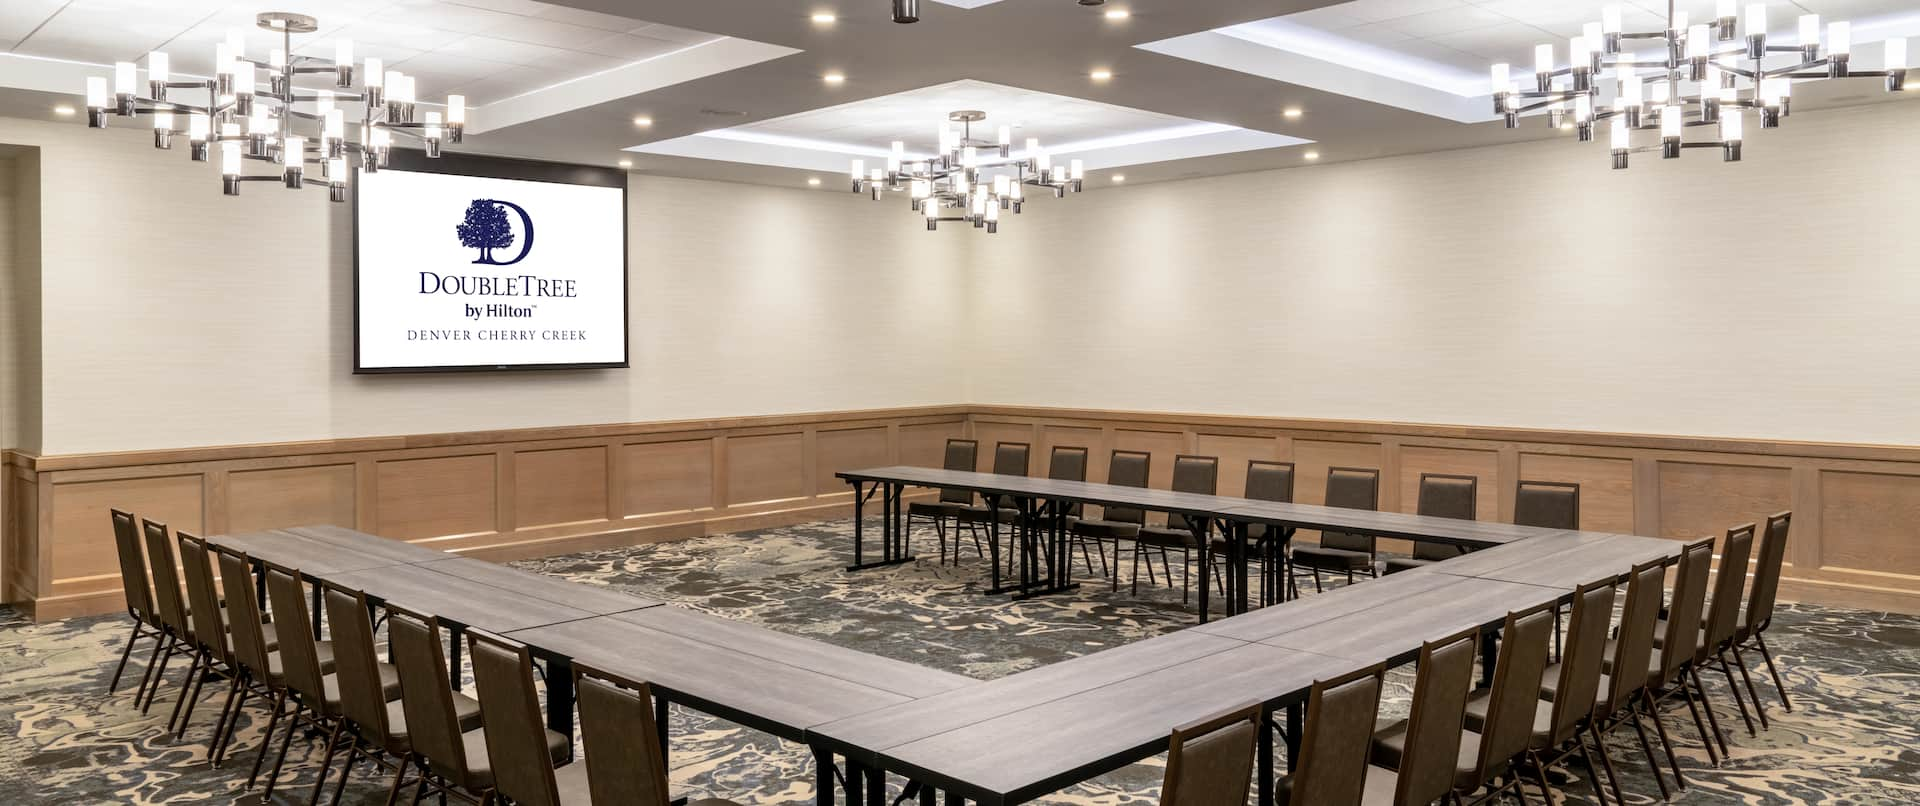 Meeting room in ushape layout